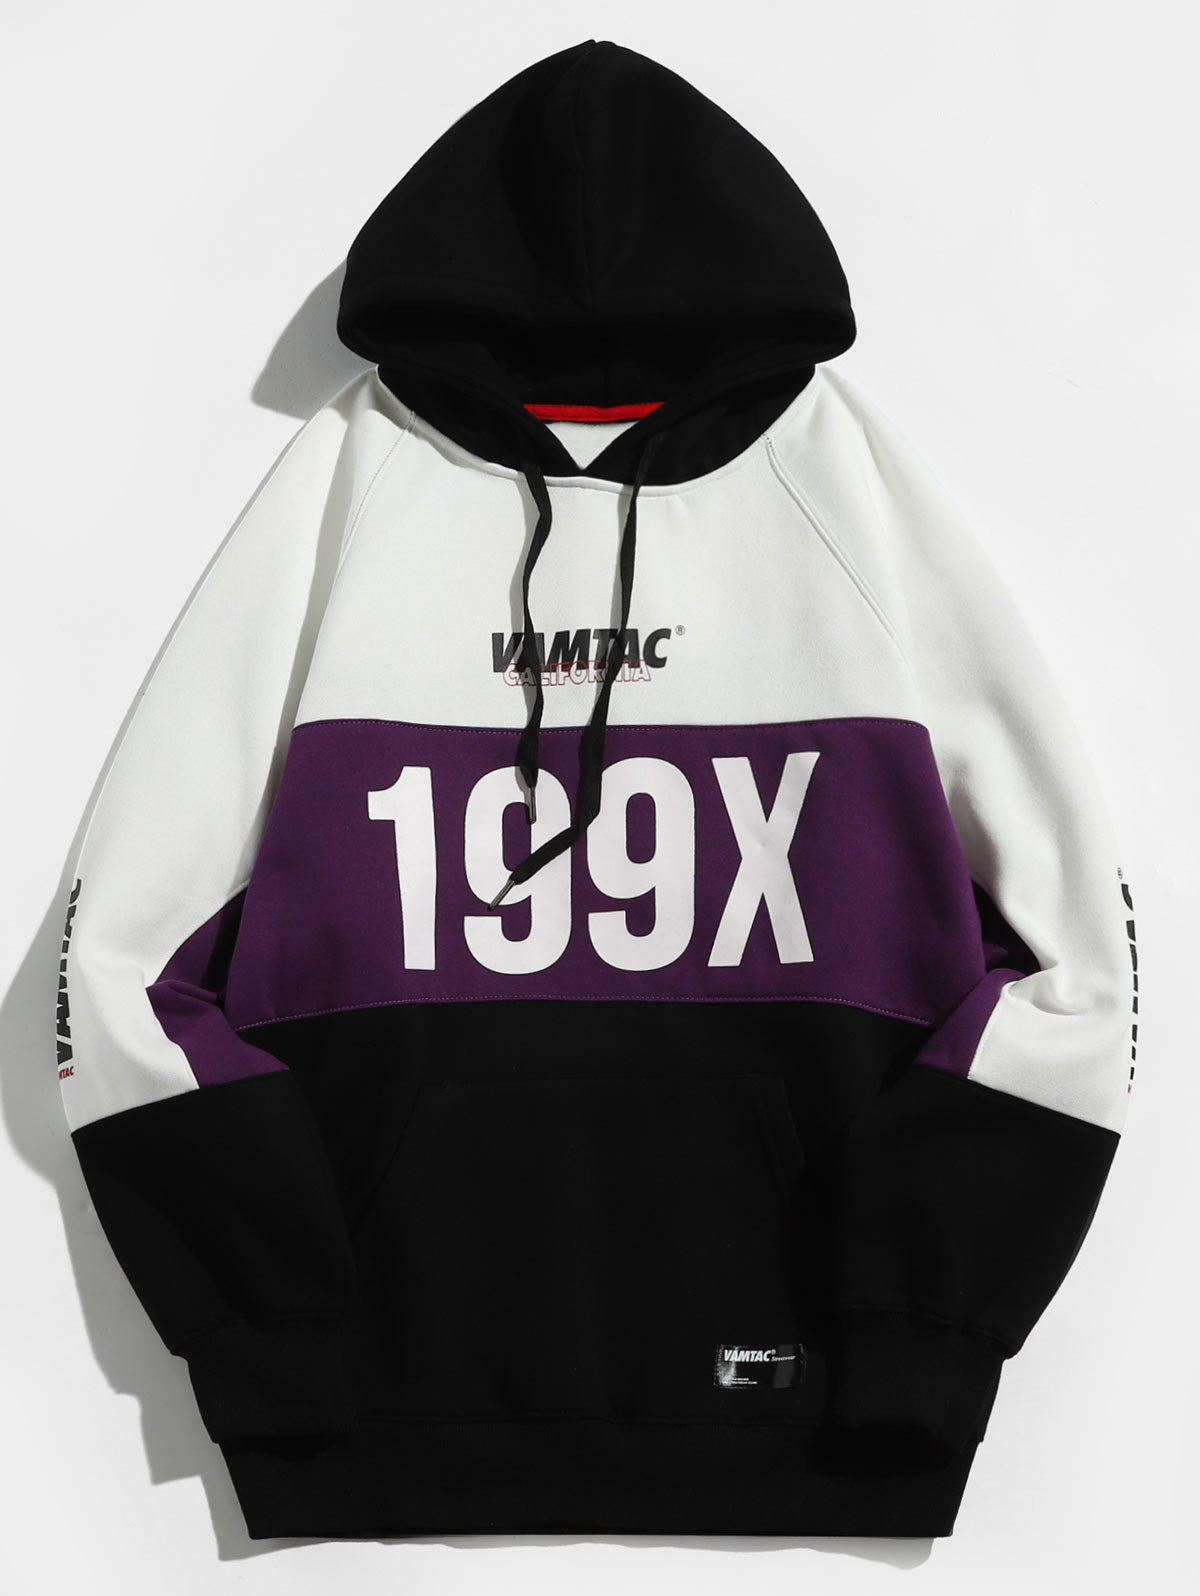 199X Graphic Fleece Lined Colorblock Hoodie